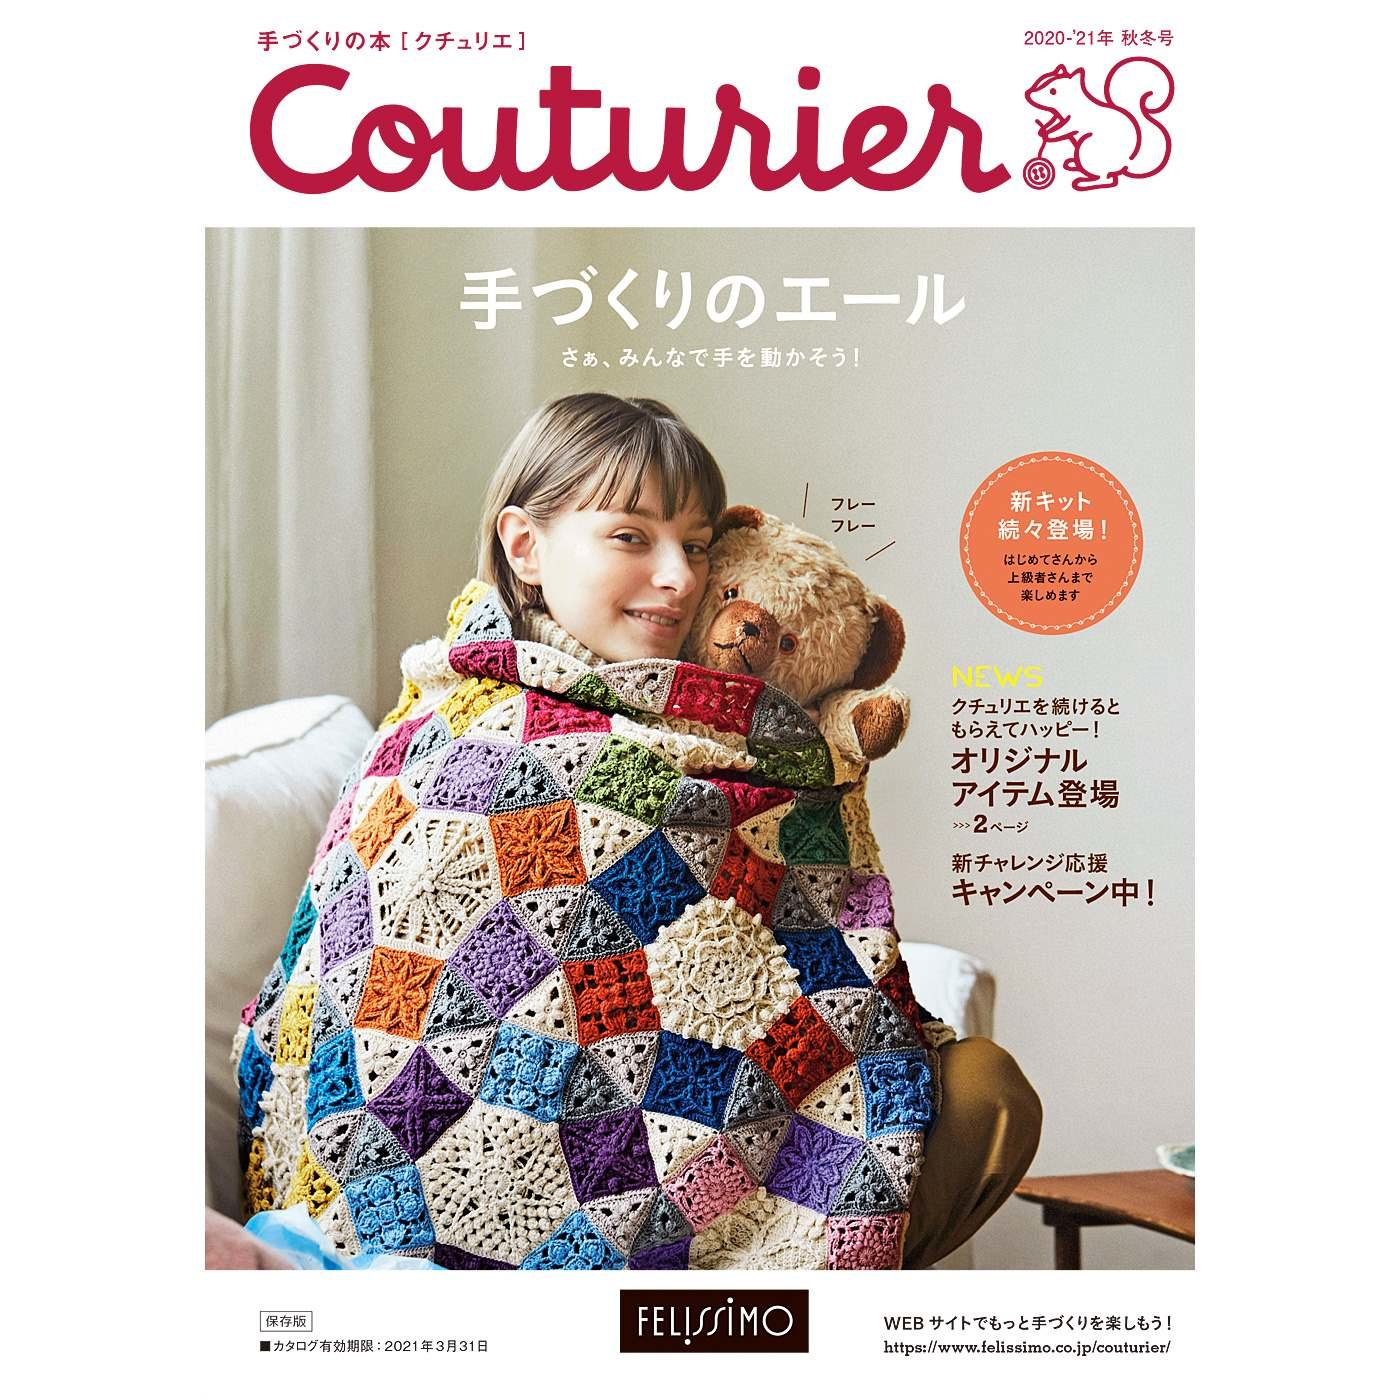 Couturier[クチュリエ] 2020-'21年 秋冬号